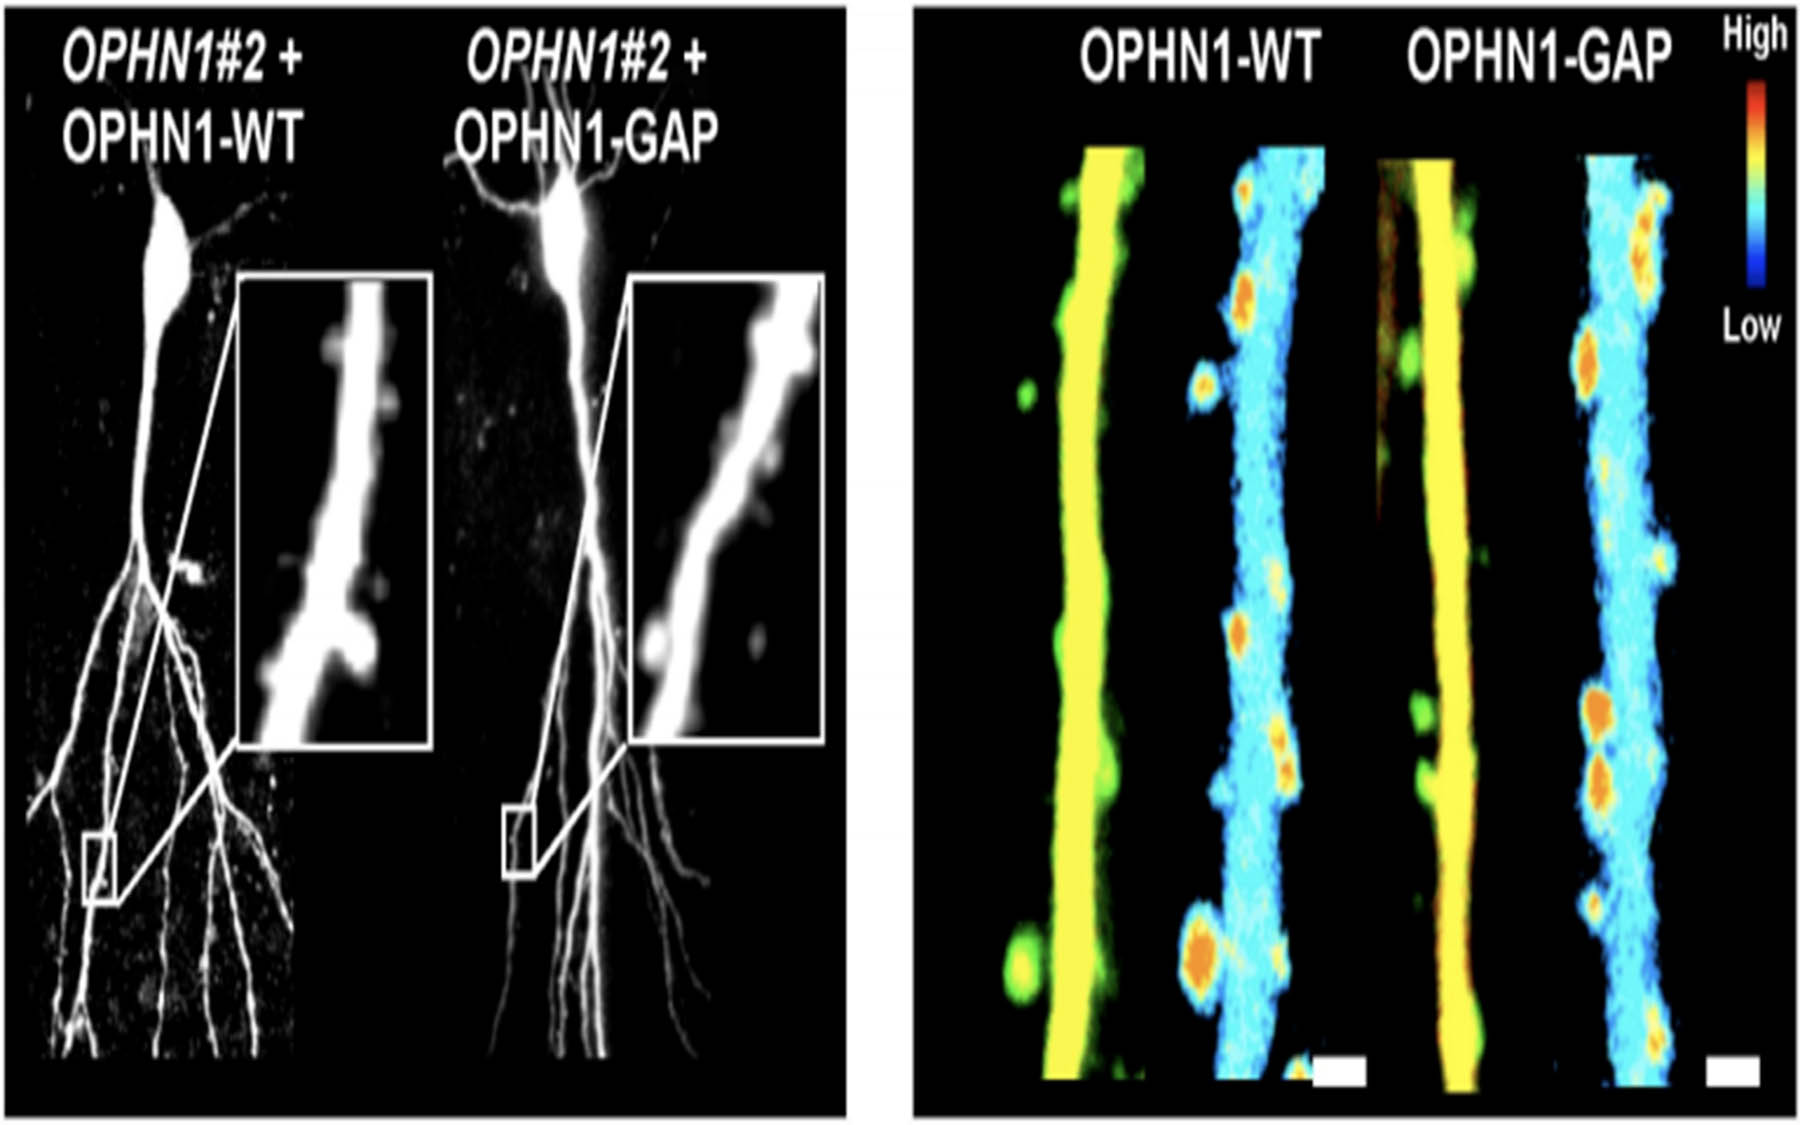 OPHN1-WT and OPHN1-GAP